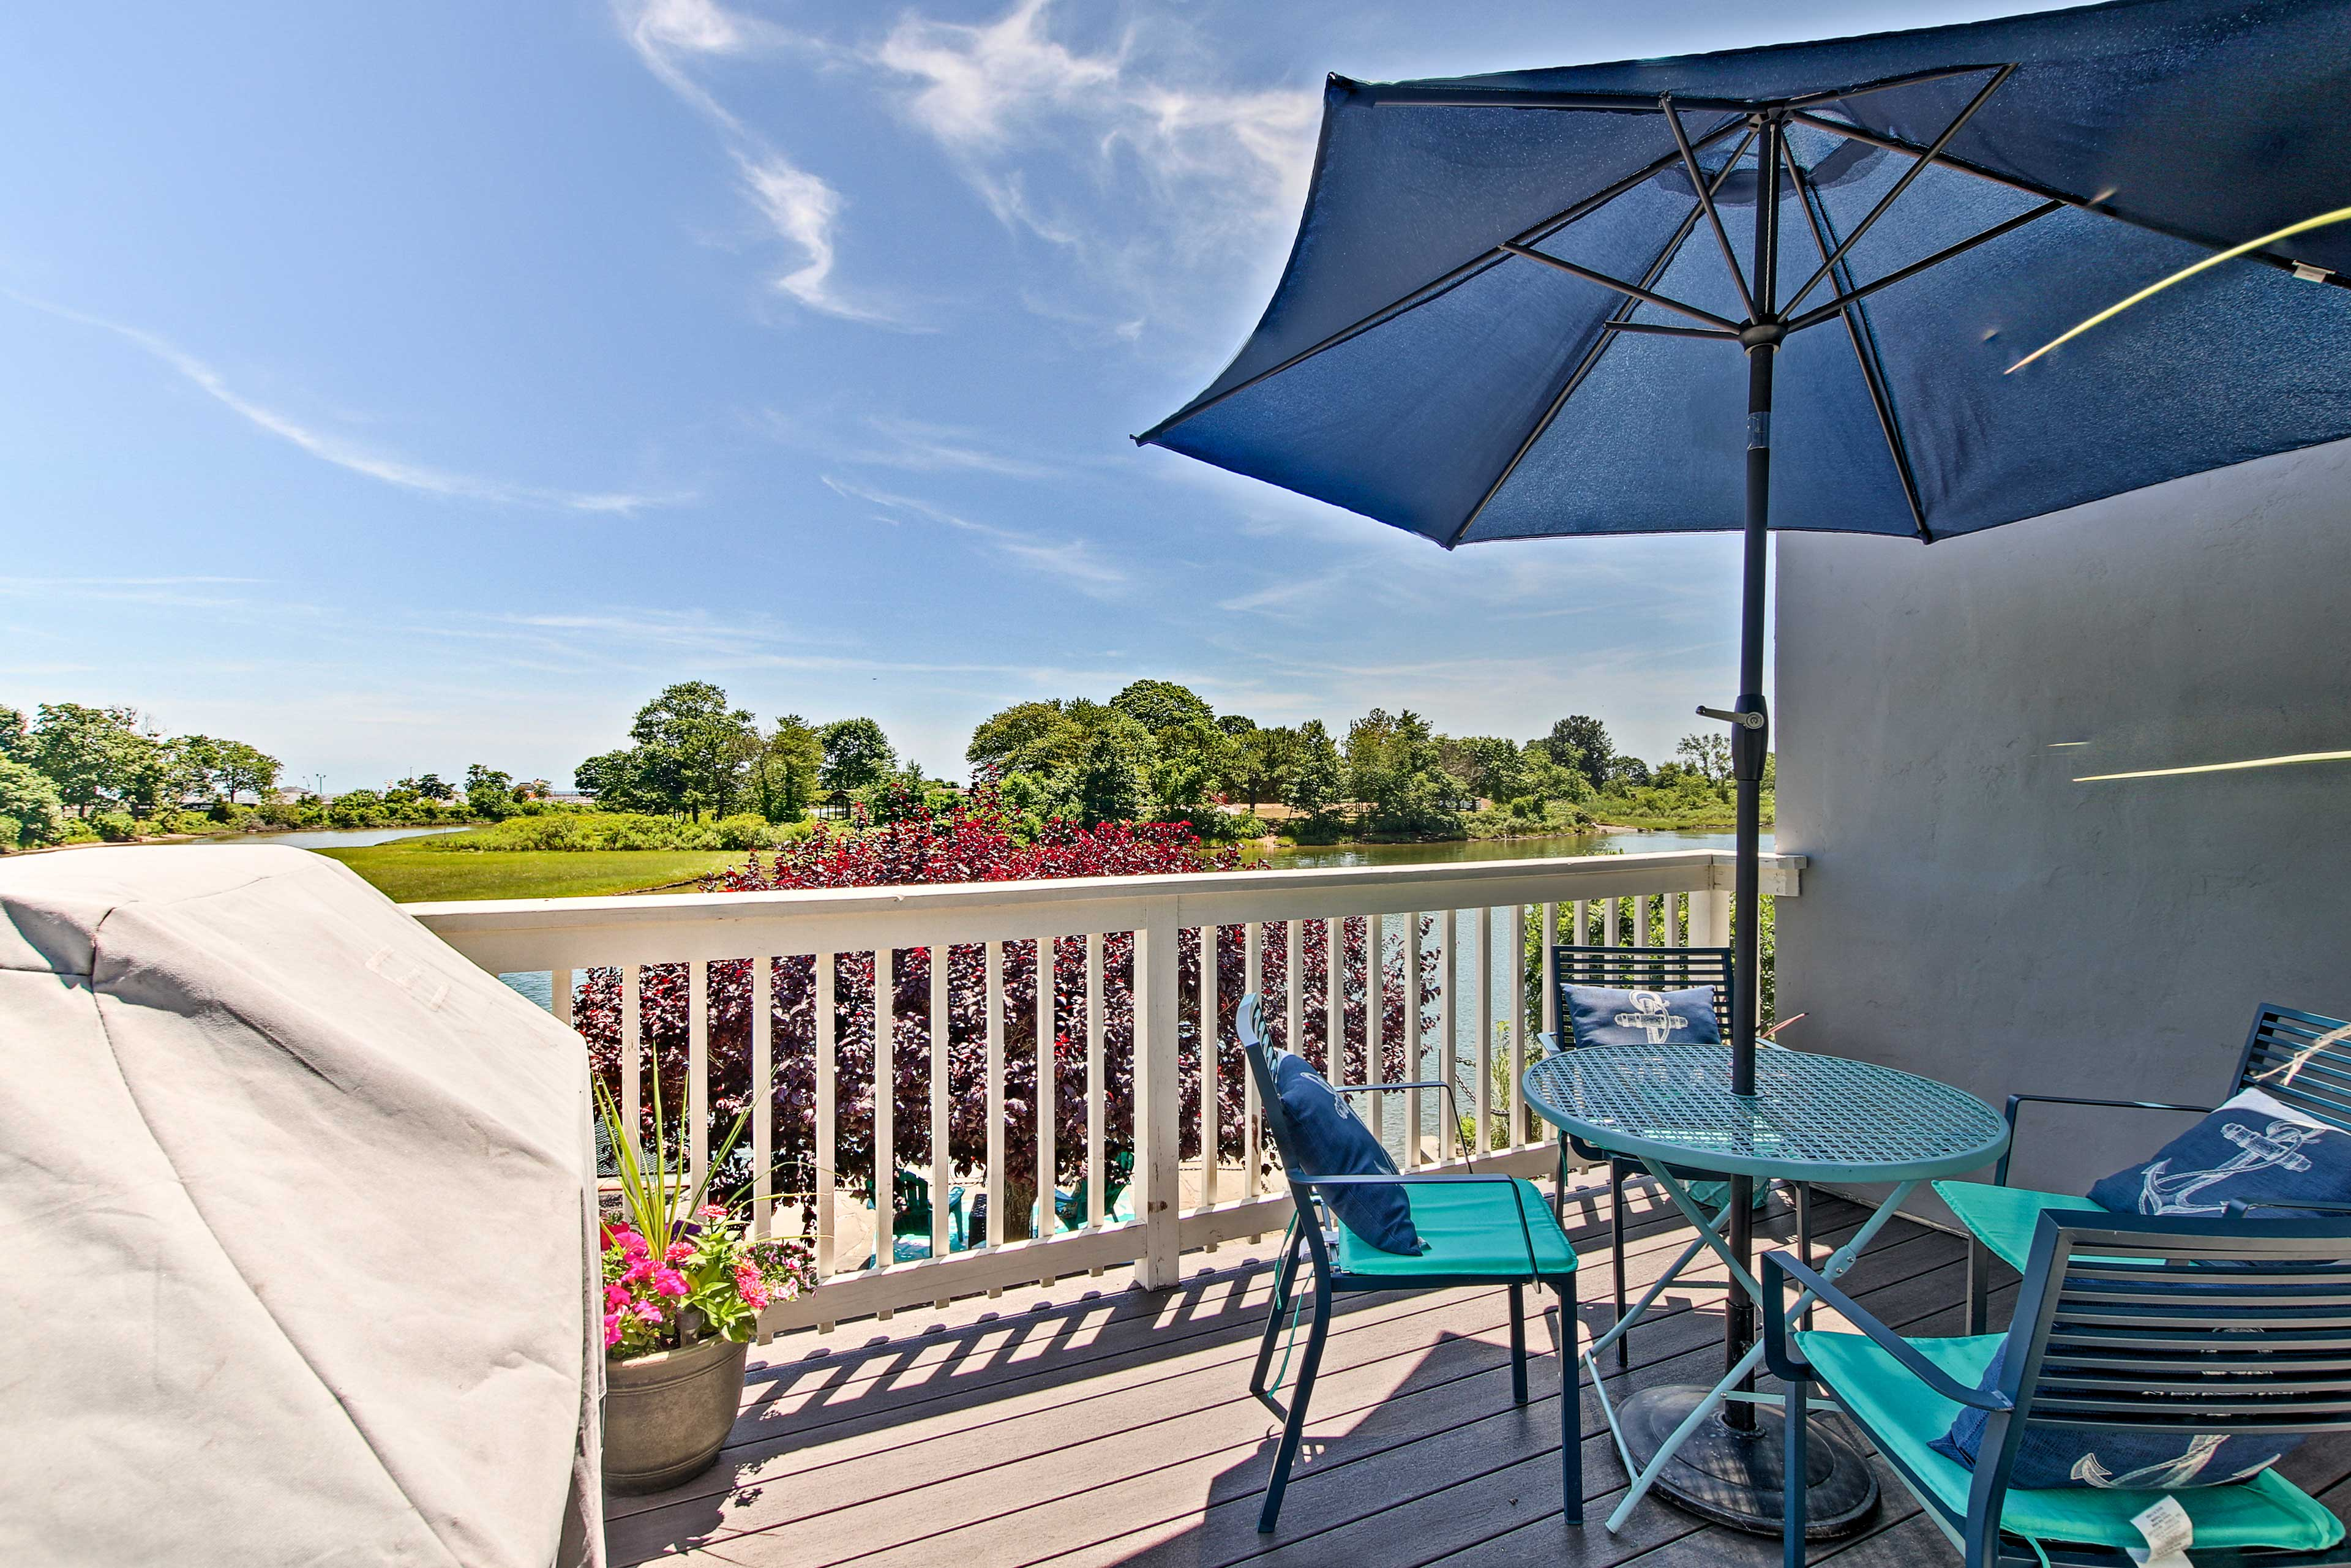 Enjoy barbecuing on the deck.